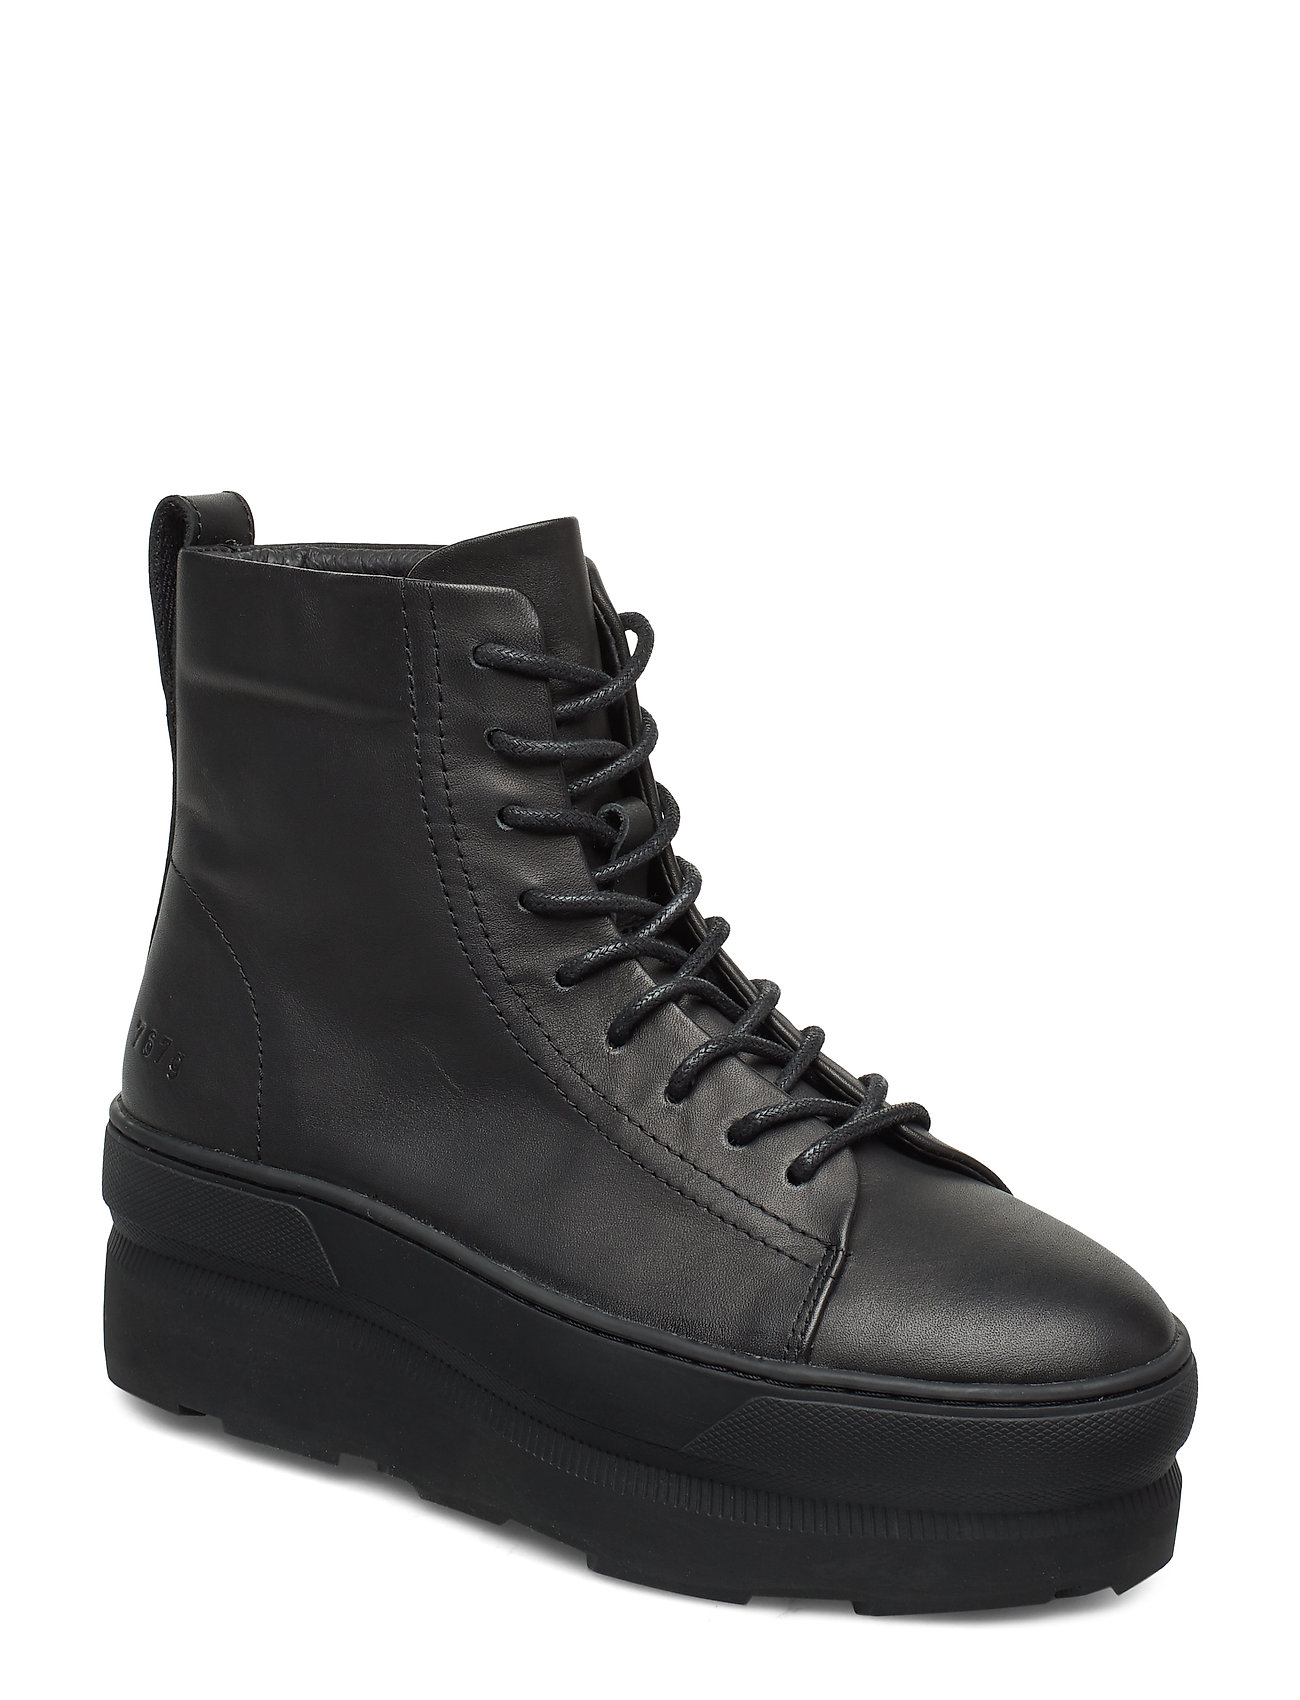 Image of 767g Black Leather Shoes Boots Ankle Boots Ankle Boot - Flat Sort Gram (3406234511)